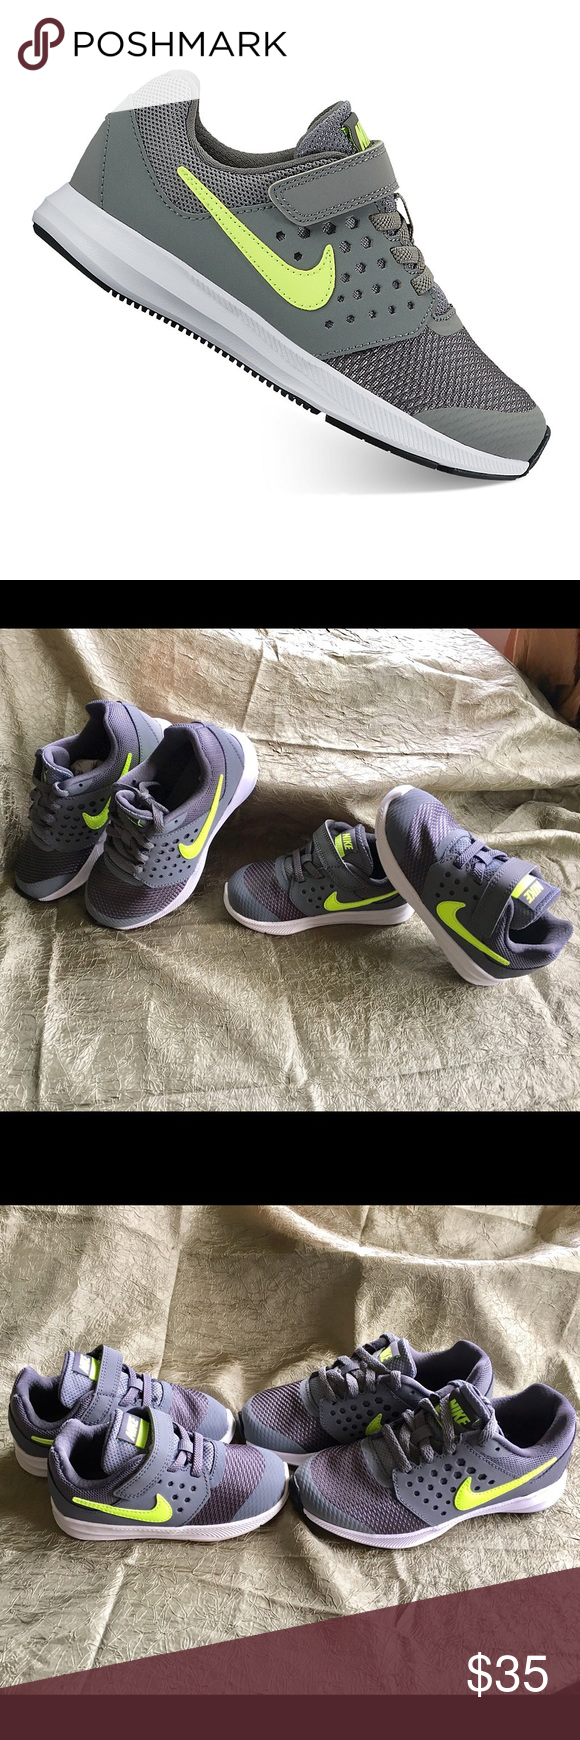 size 40 a5359 27866 Nike shoes for youth!! Nike Downshifter 7 youth Boys Shoes, size 11 and 8,  color gray and green, brand new, price above is for each pair Nike Shoes  Sneakers